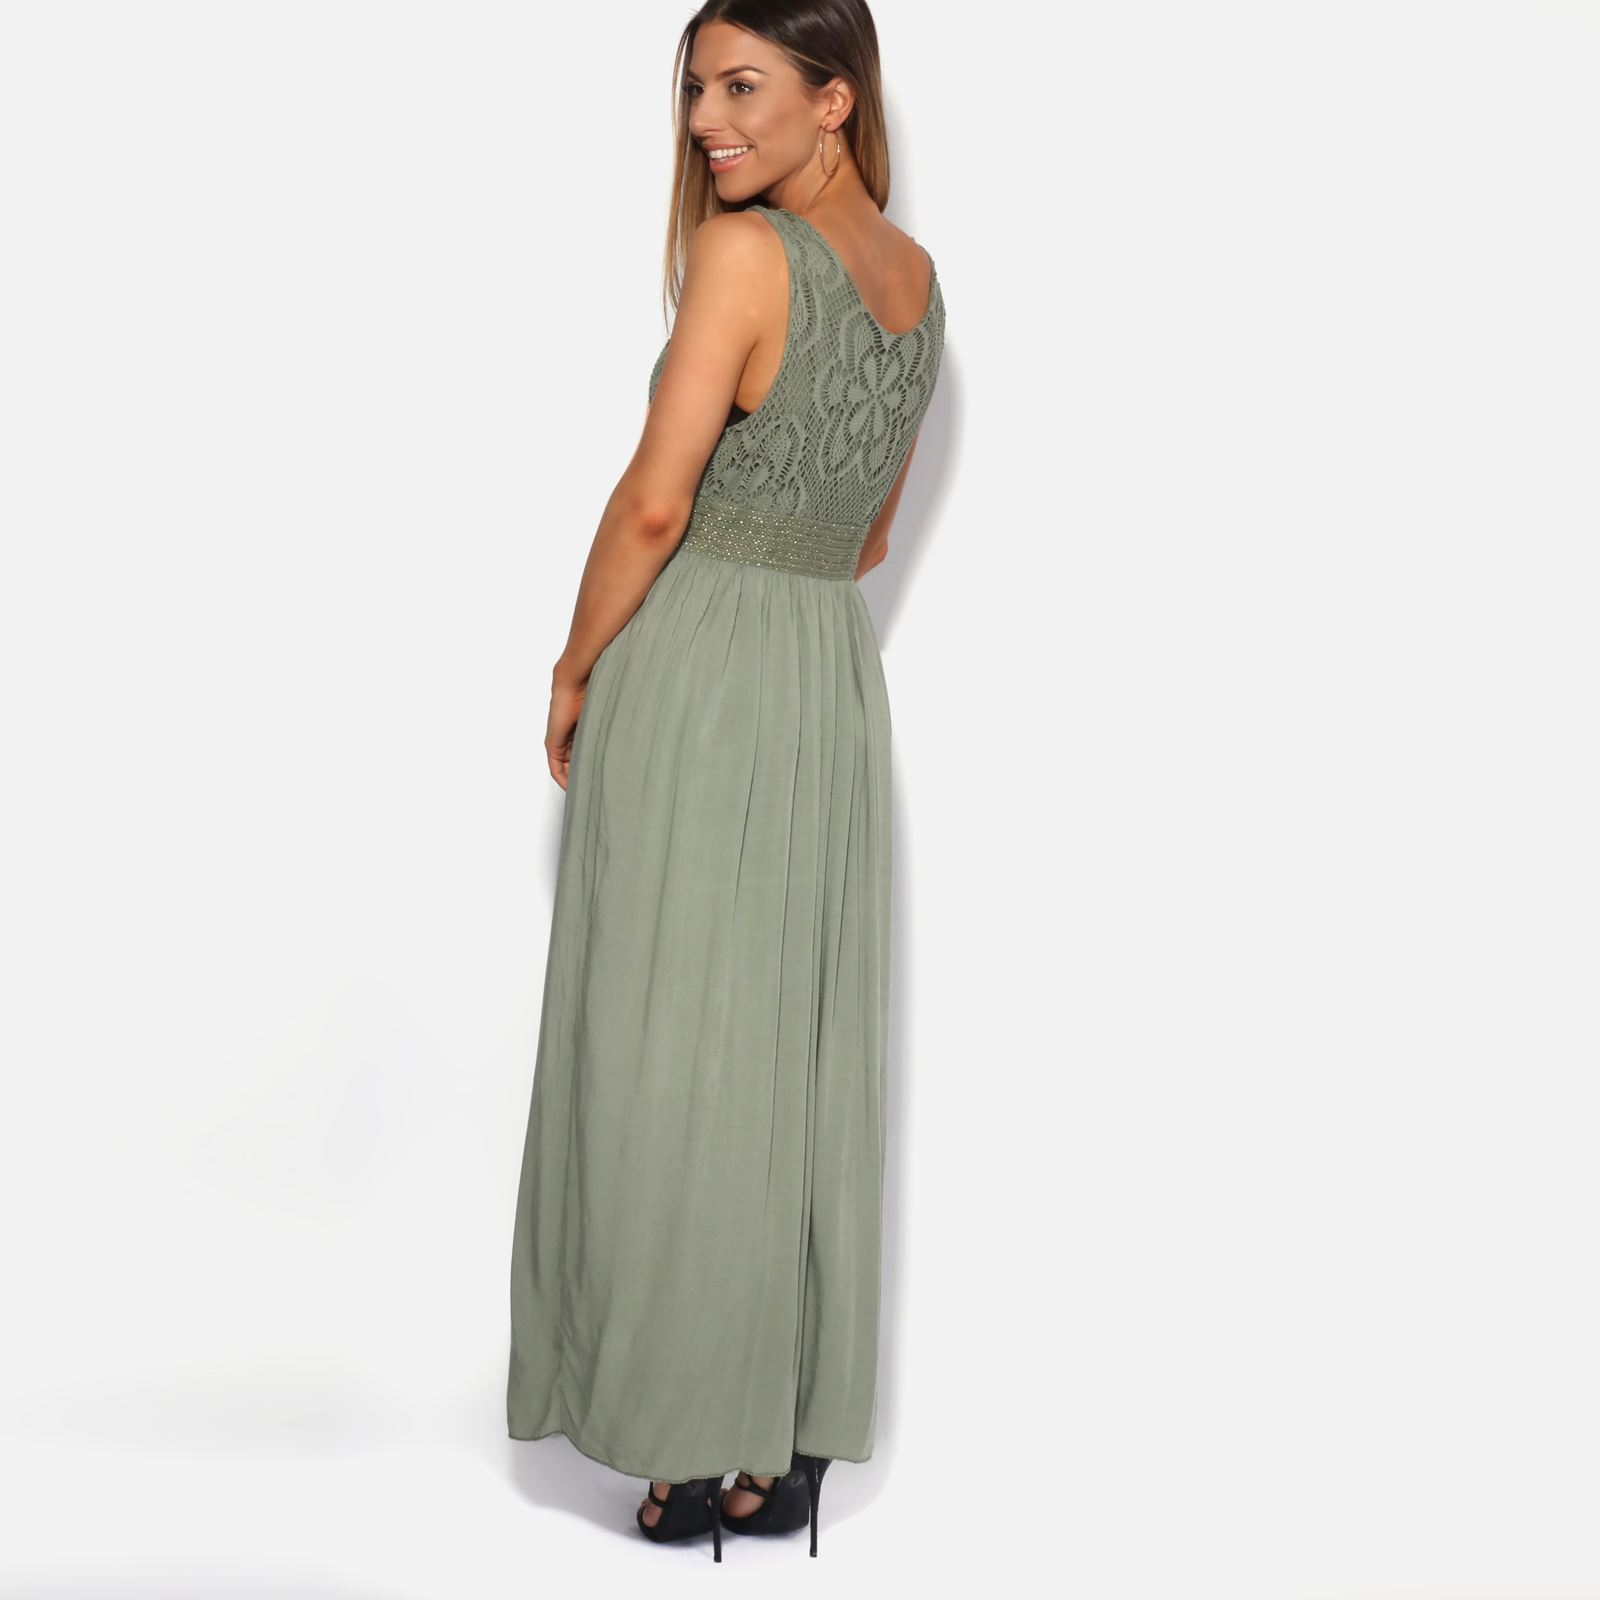 Women-Boho-Maxi-Dress-Gown-Soft-Cotton-Long-Pleated-Flared-Gypsy-Summer-Festival thumbnail 7